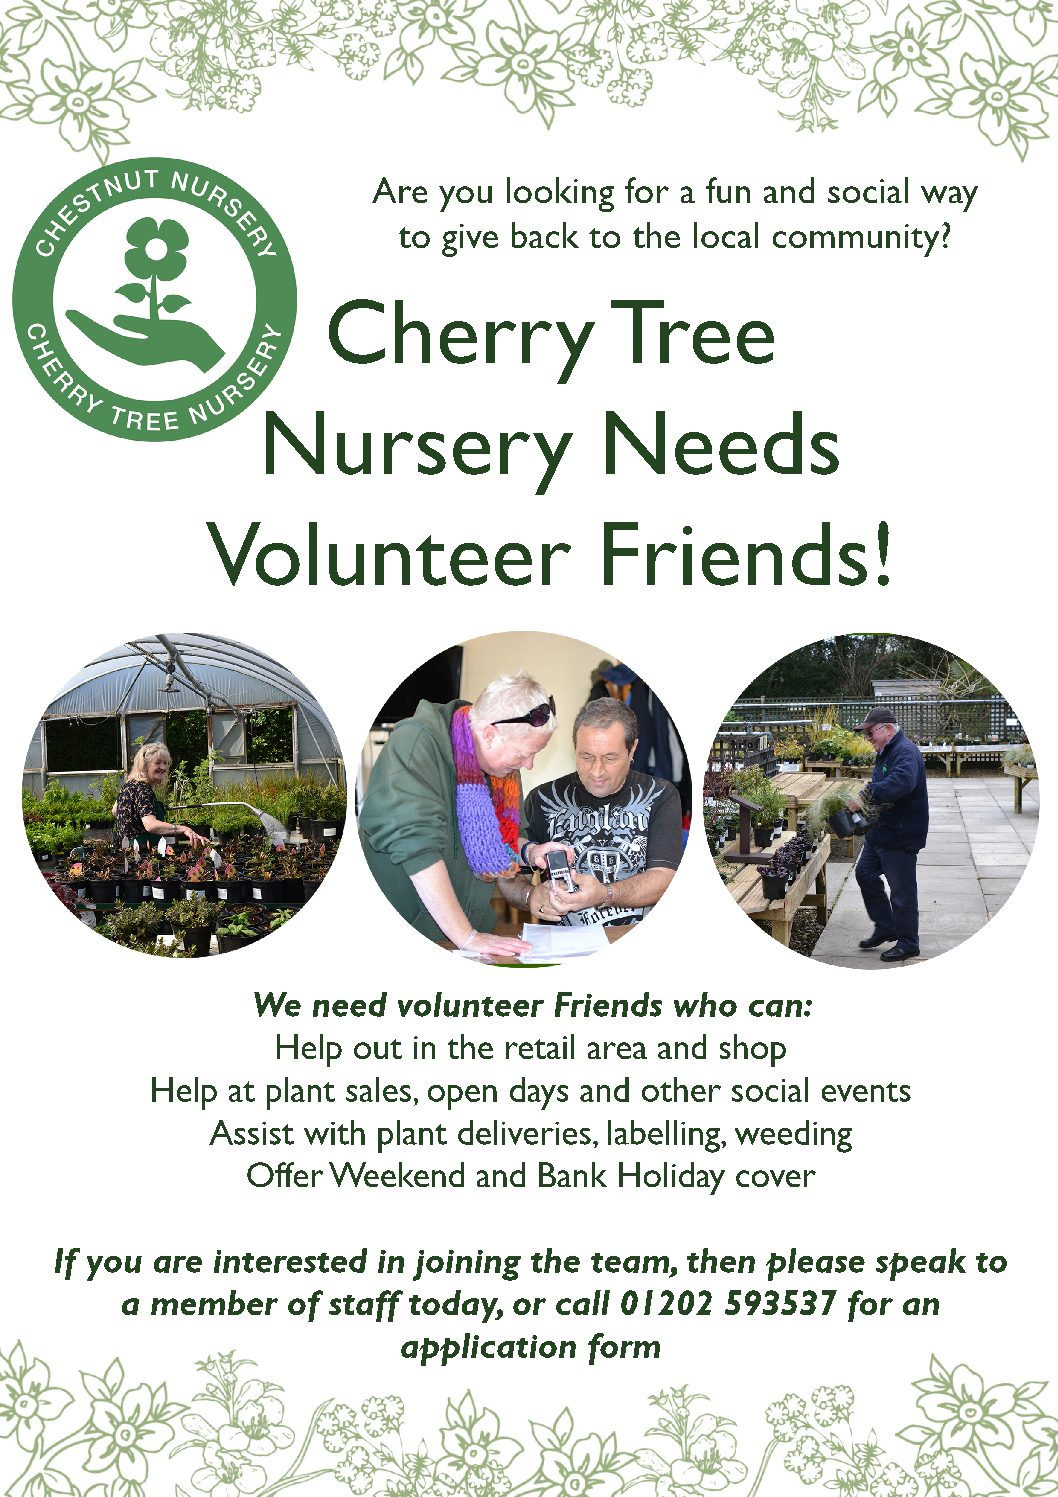 Weekend Retail Volunteer Friends needed!